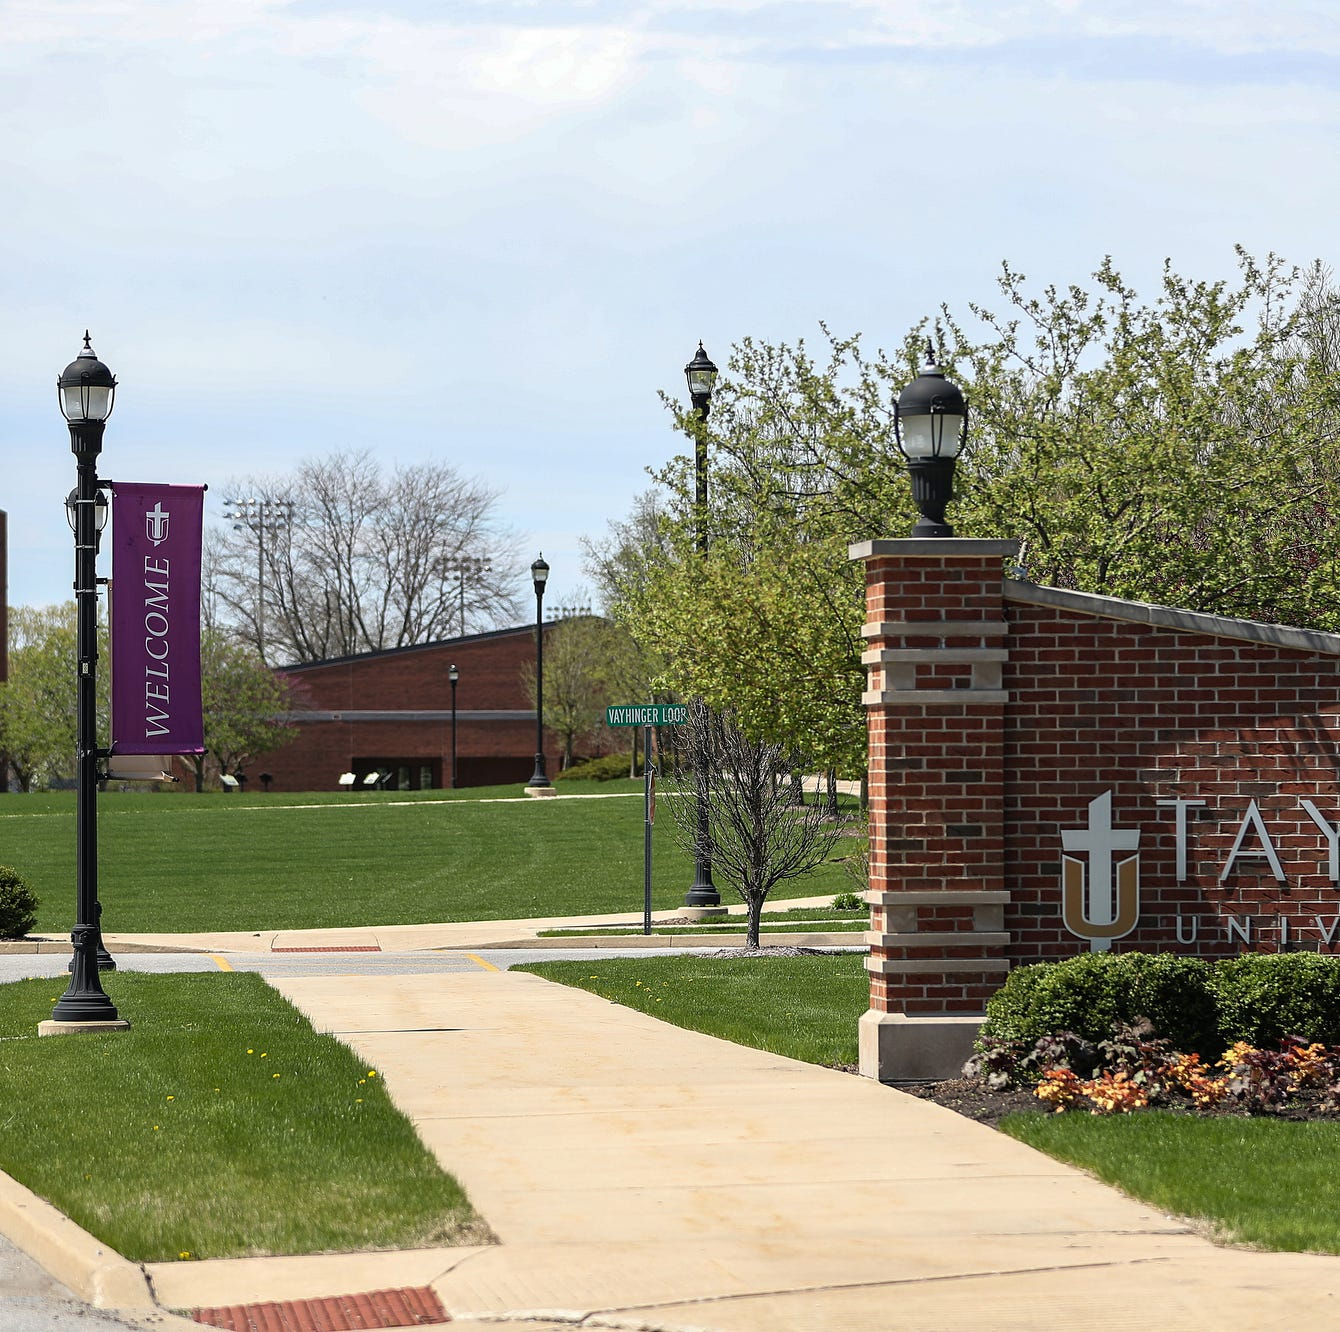 Letters: Political views taint Pence's visit to Taylor University